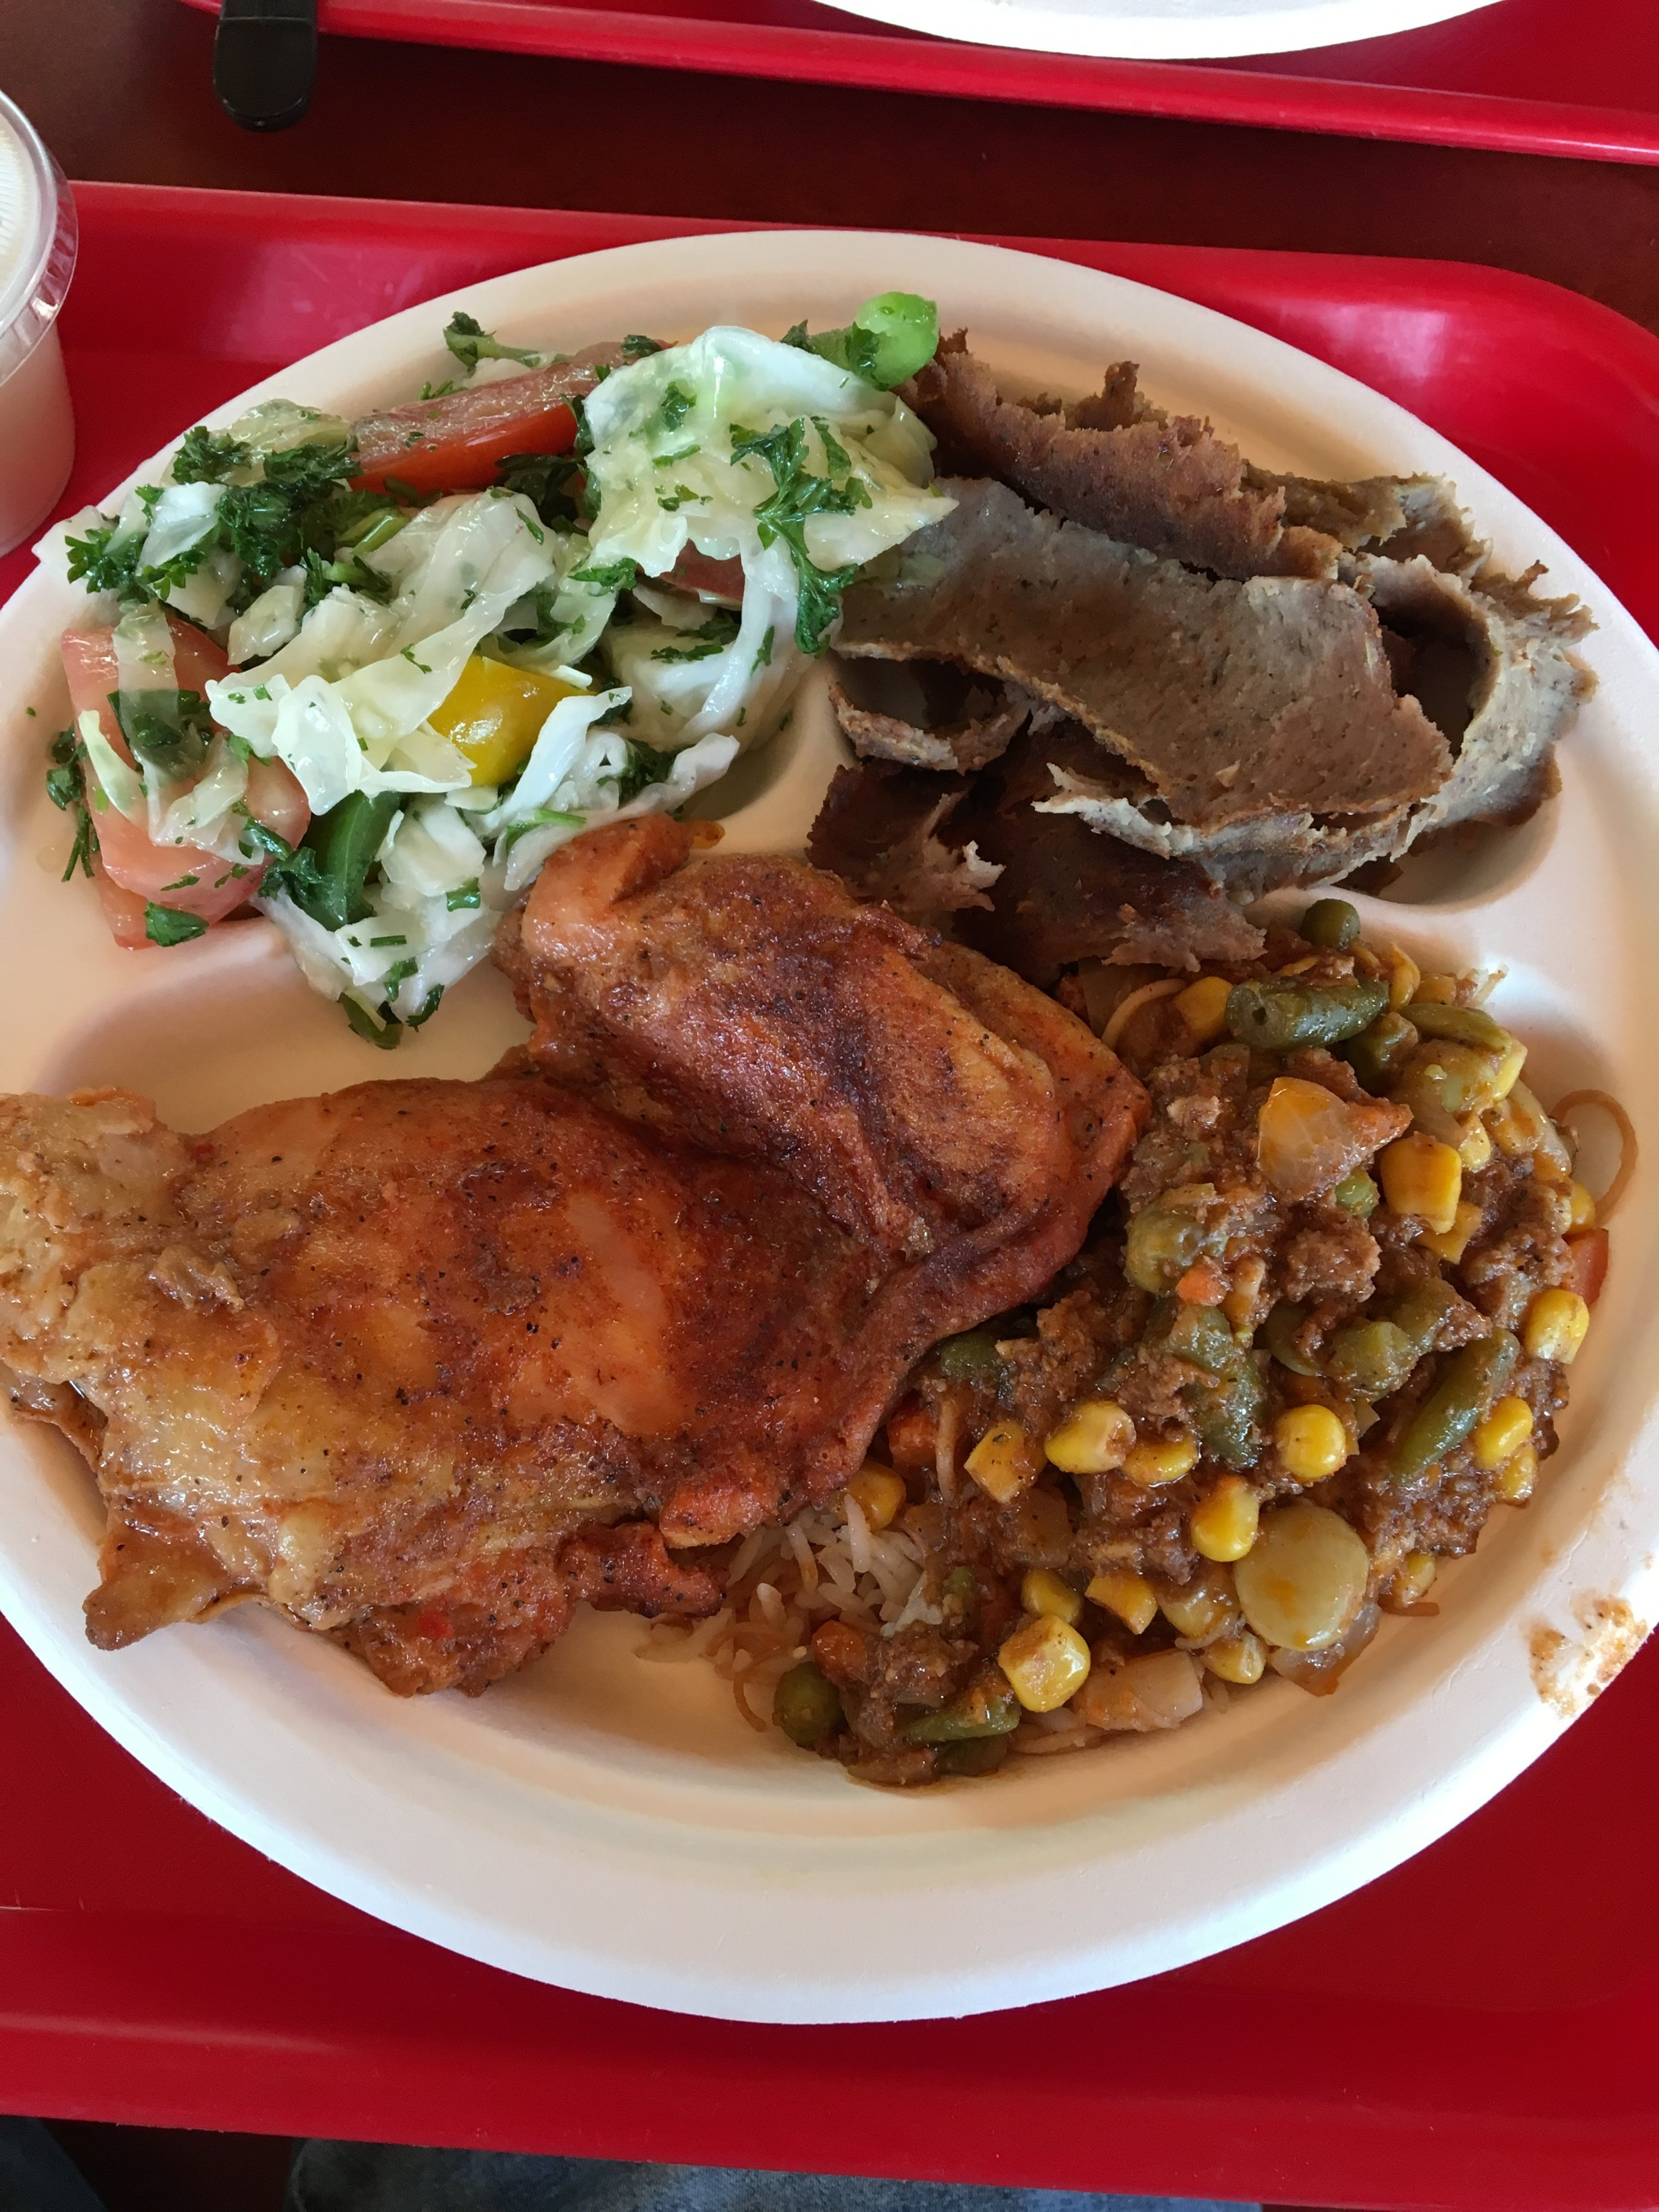 A plate full of goodness from Zakia Deli